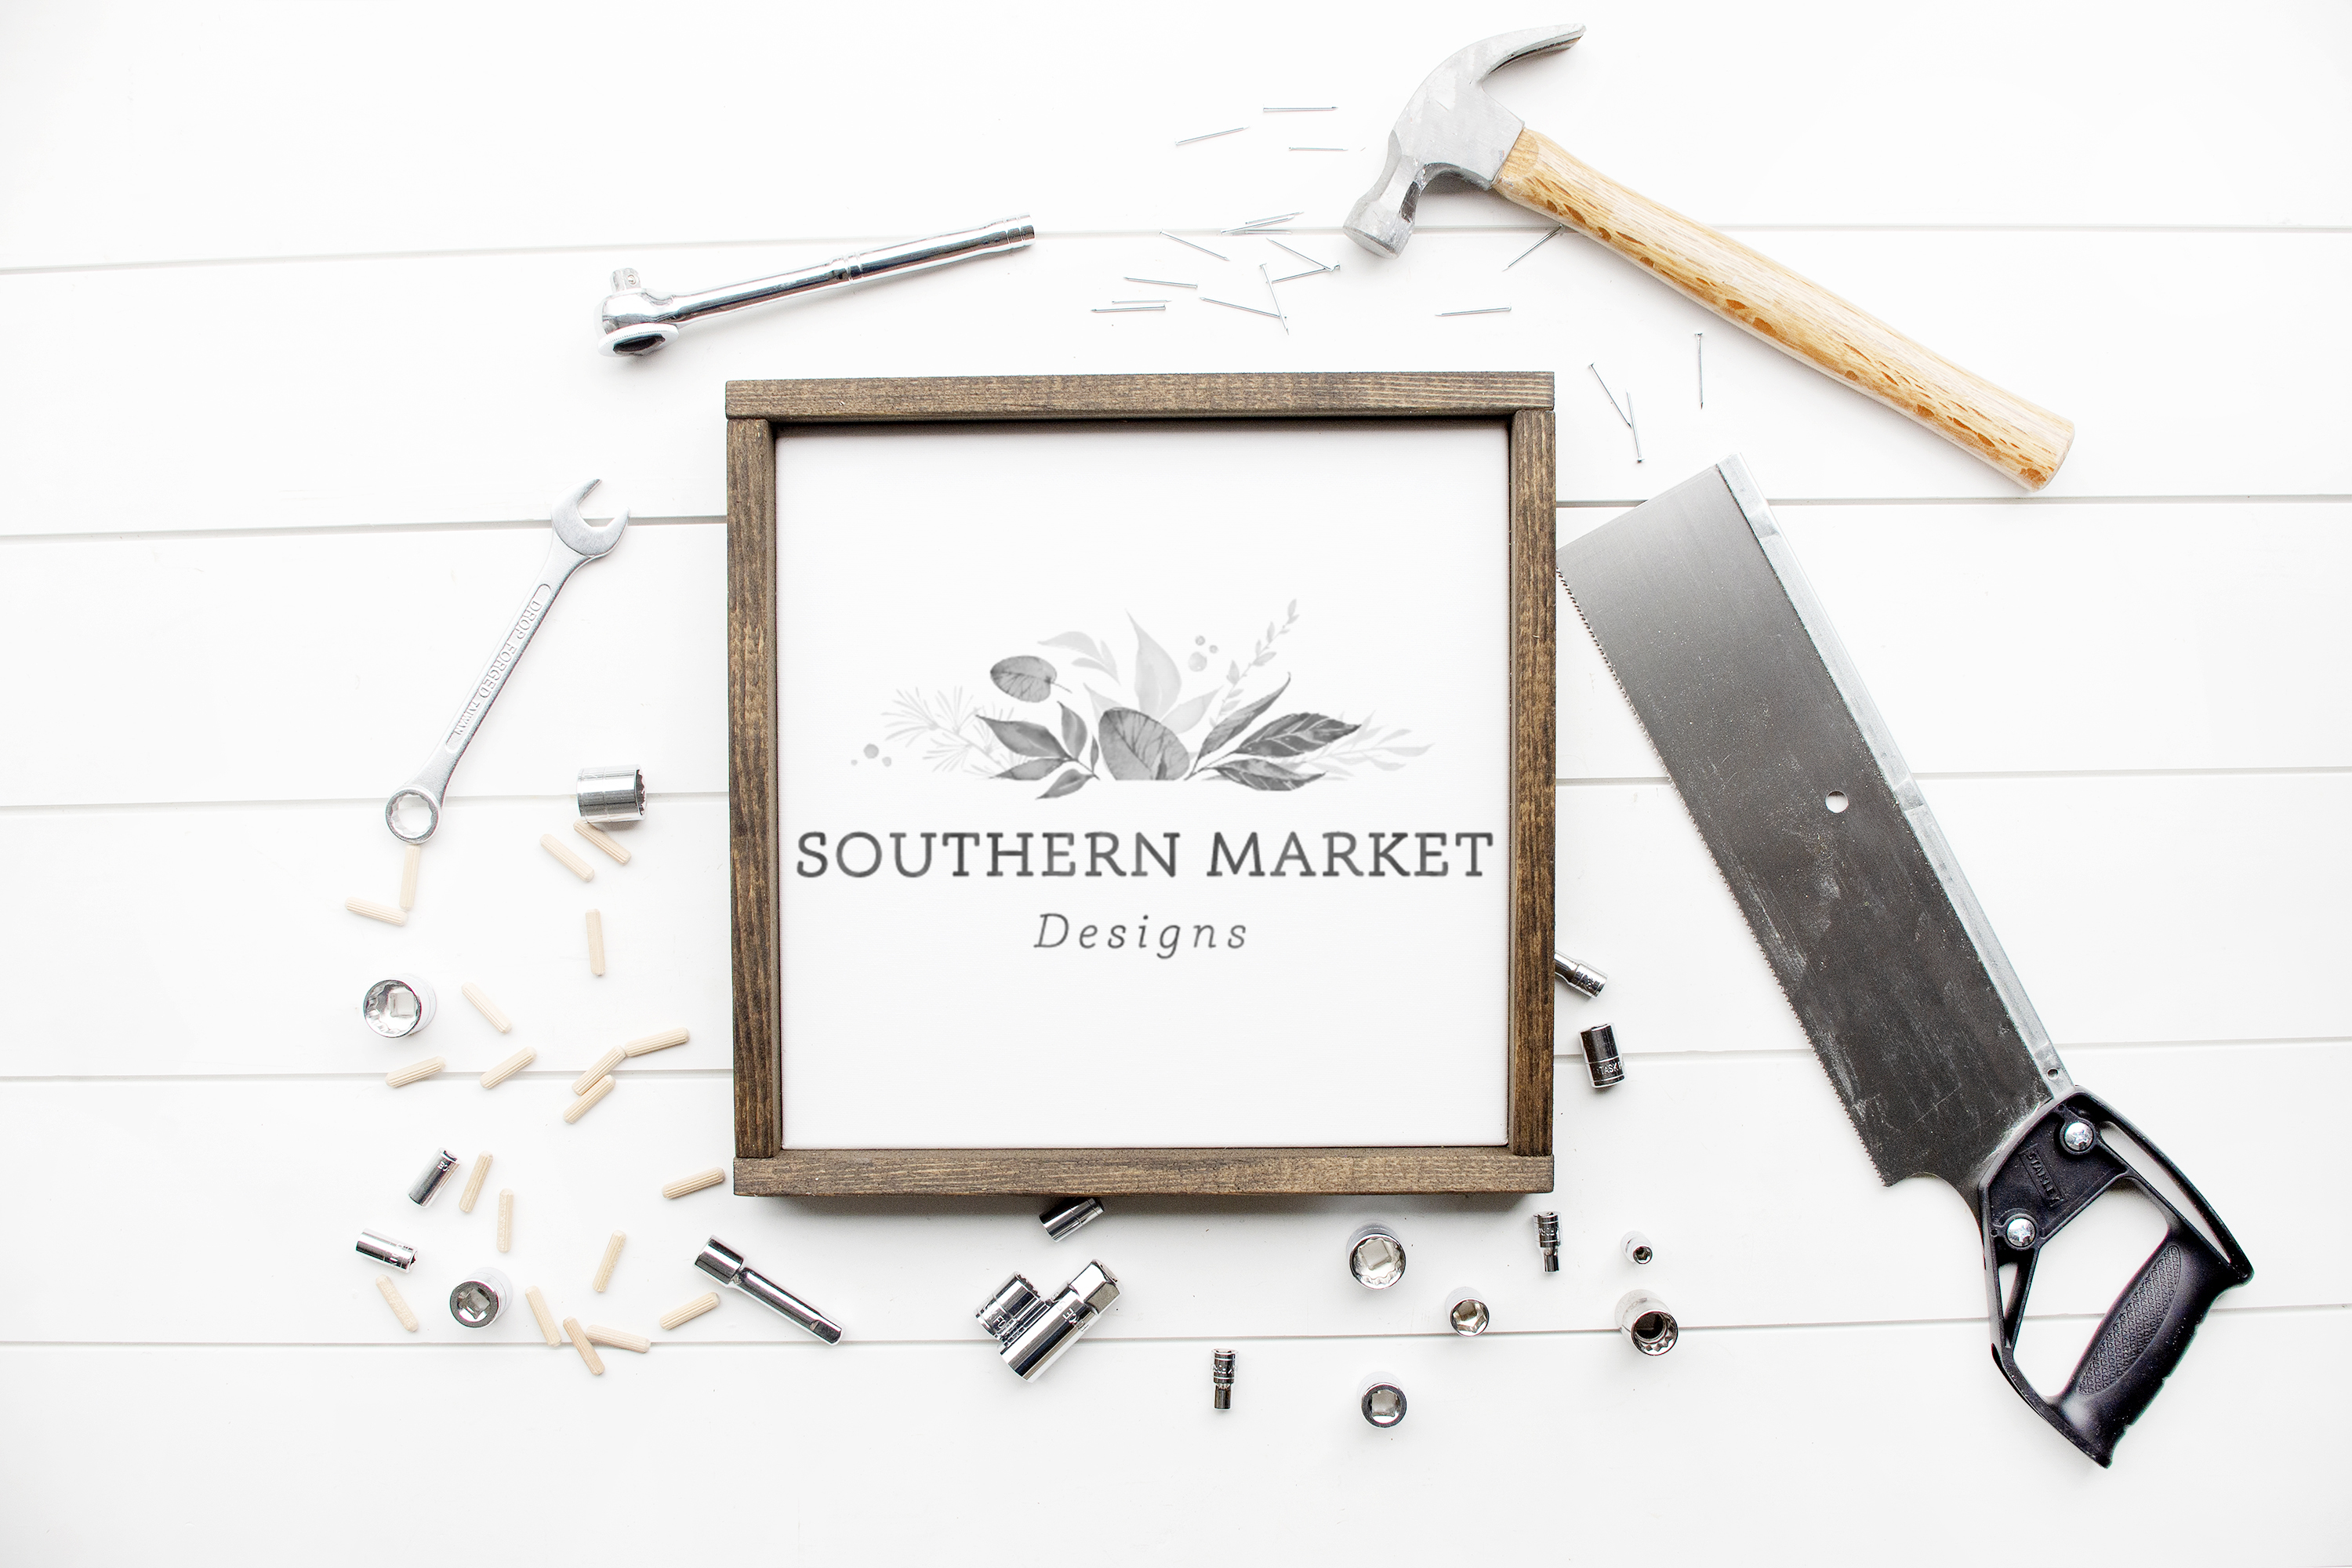 12x12 Wood Framed Sign Mock Up Tool Styled Photography example image 1